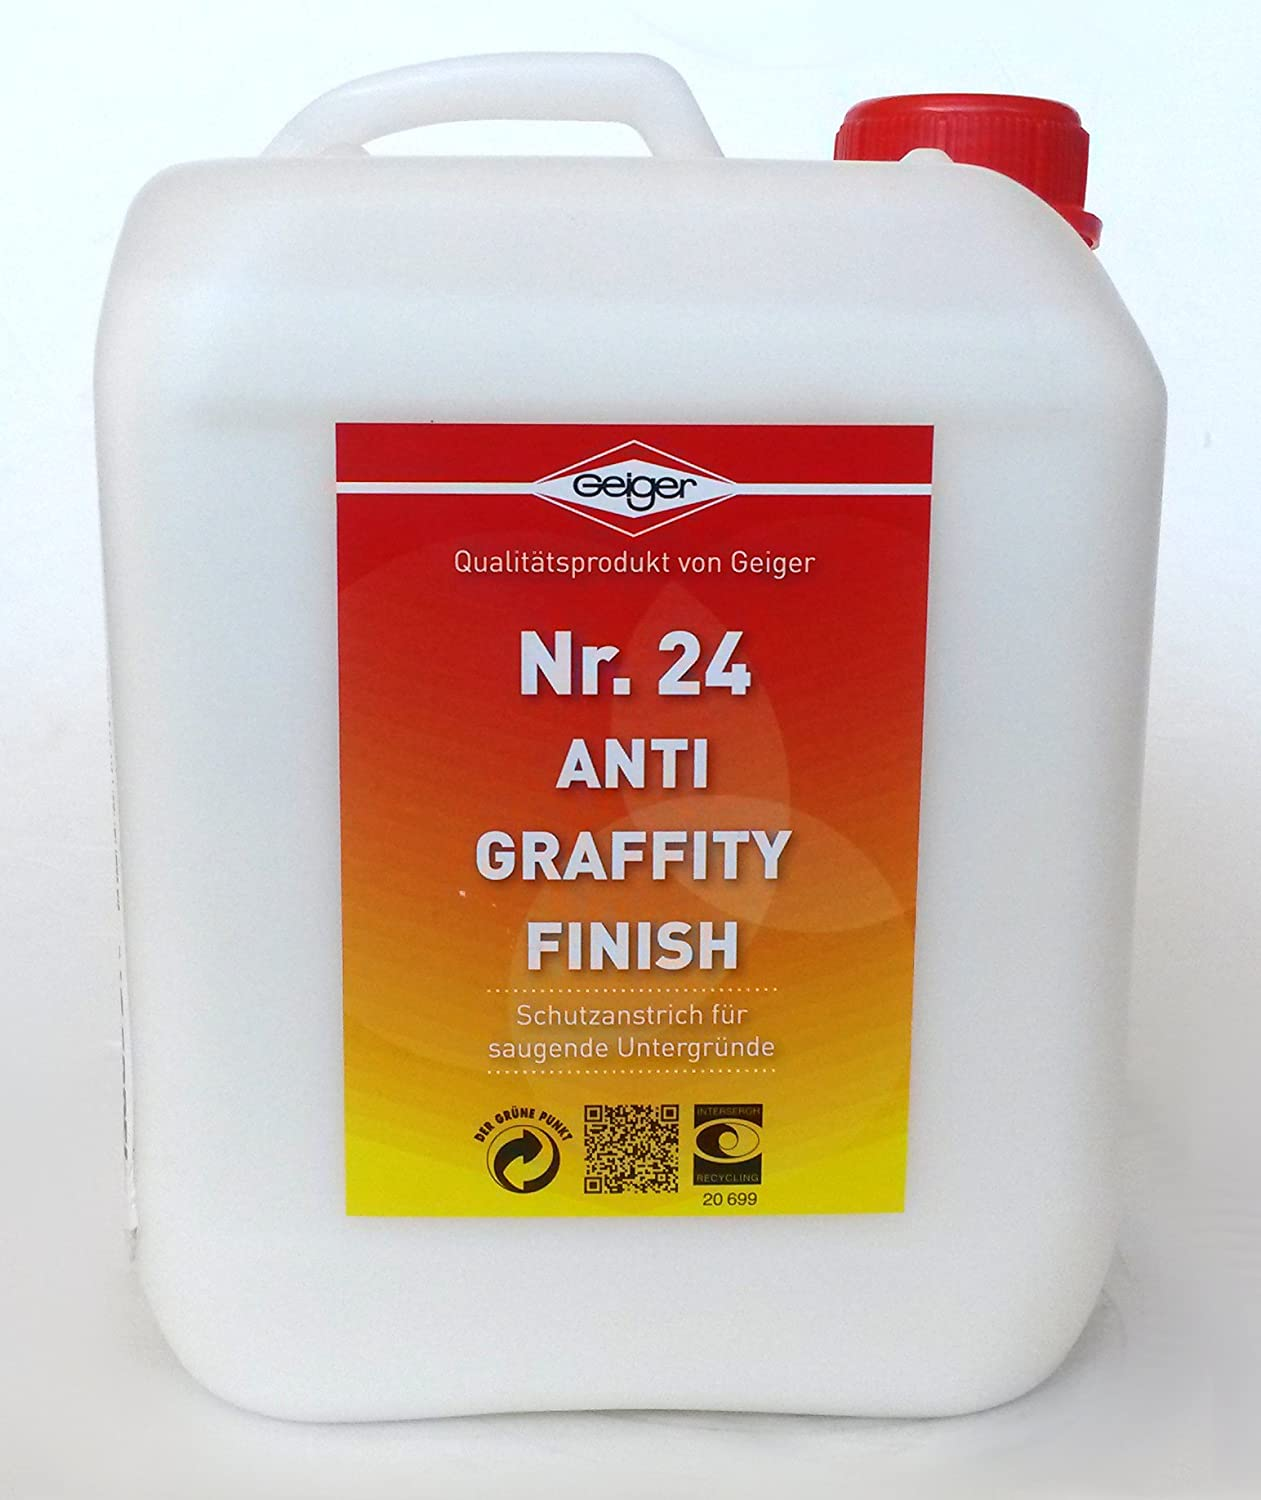 Geiger Anti Graffity Finish Graffiti 5 L